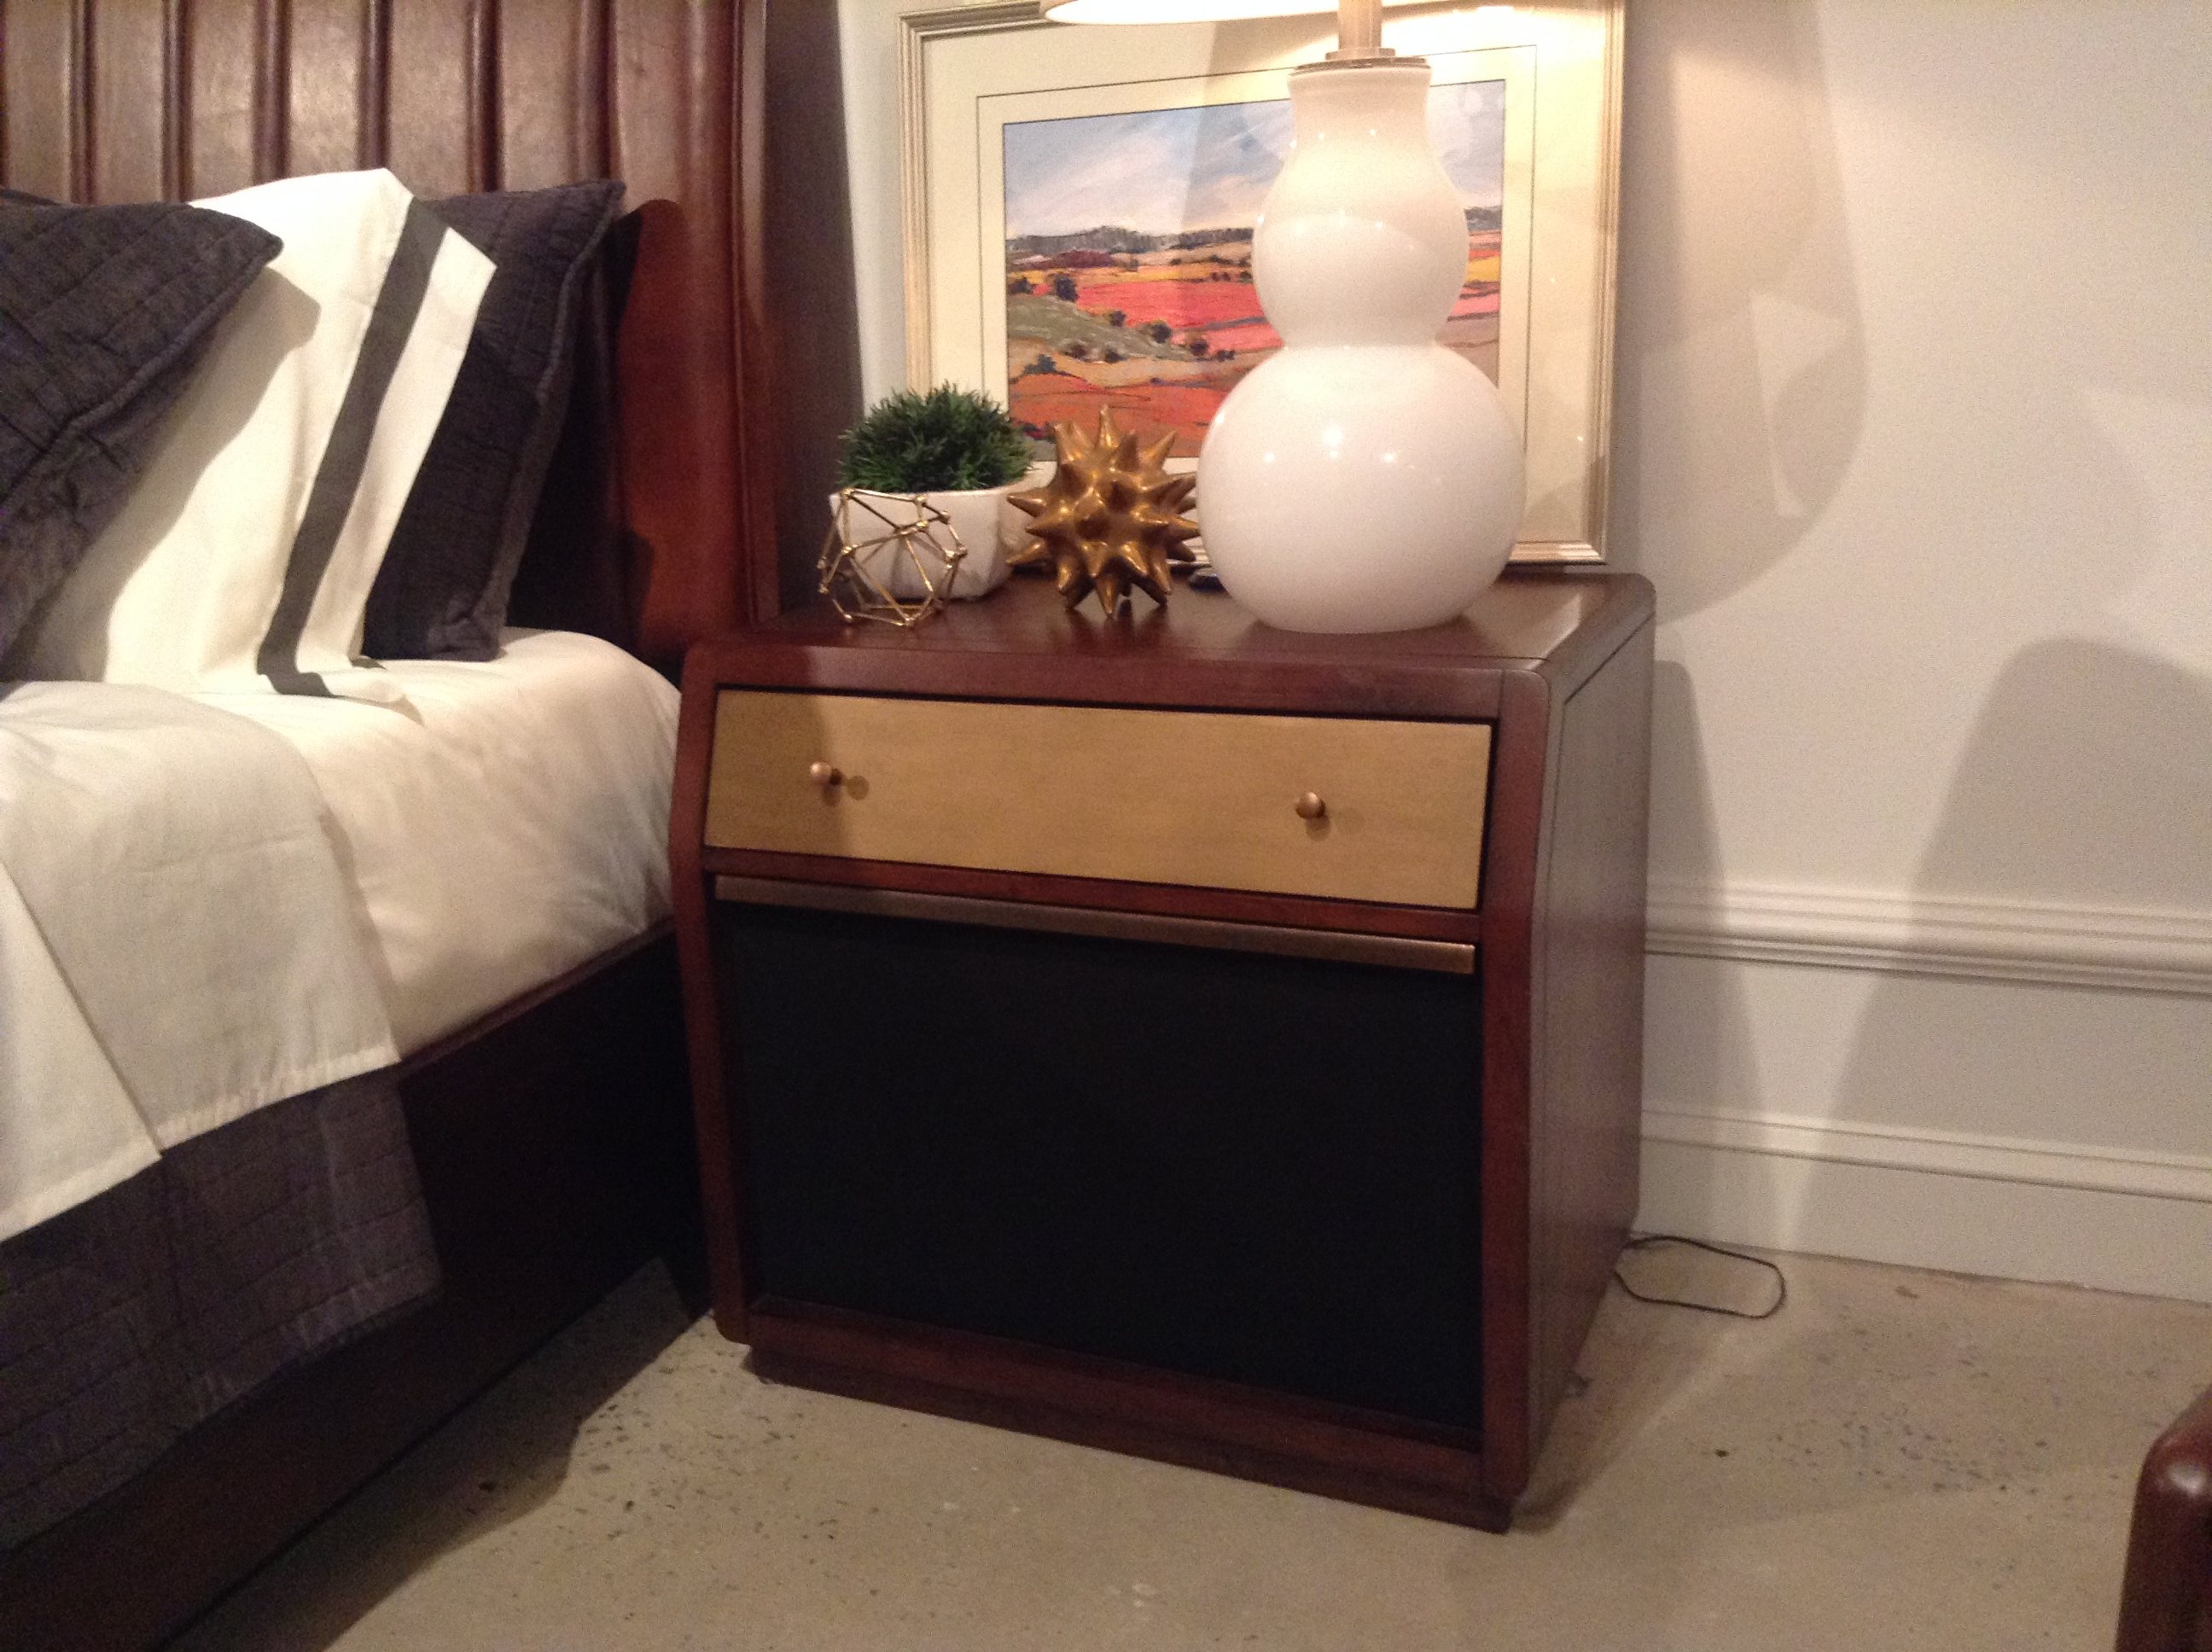 Music To My Ears: Musical Influences In Home Furnishings